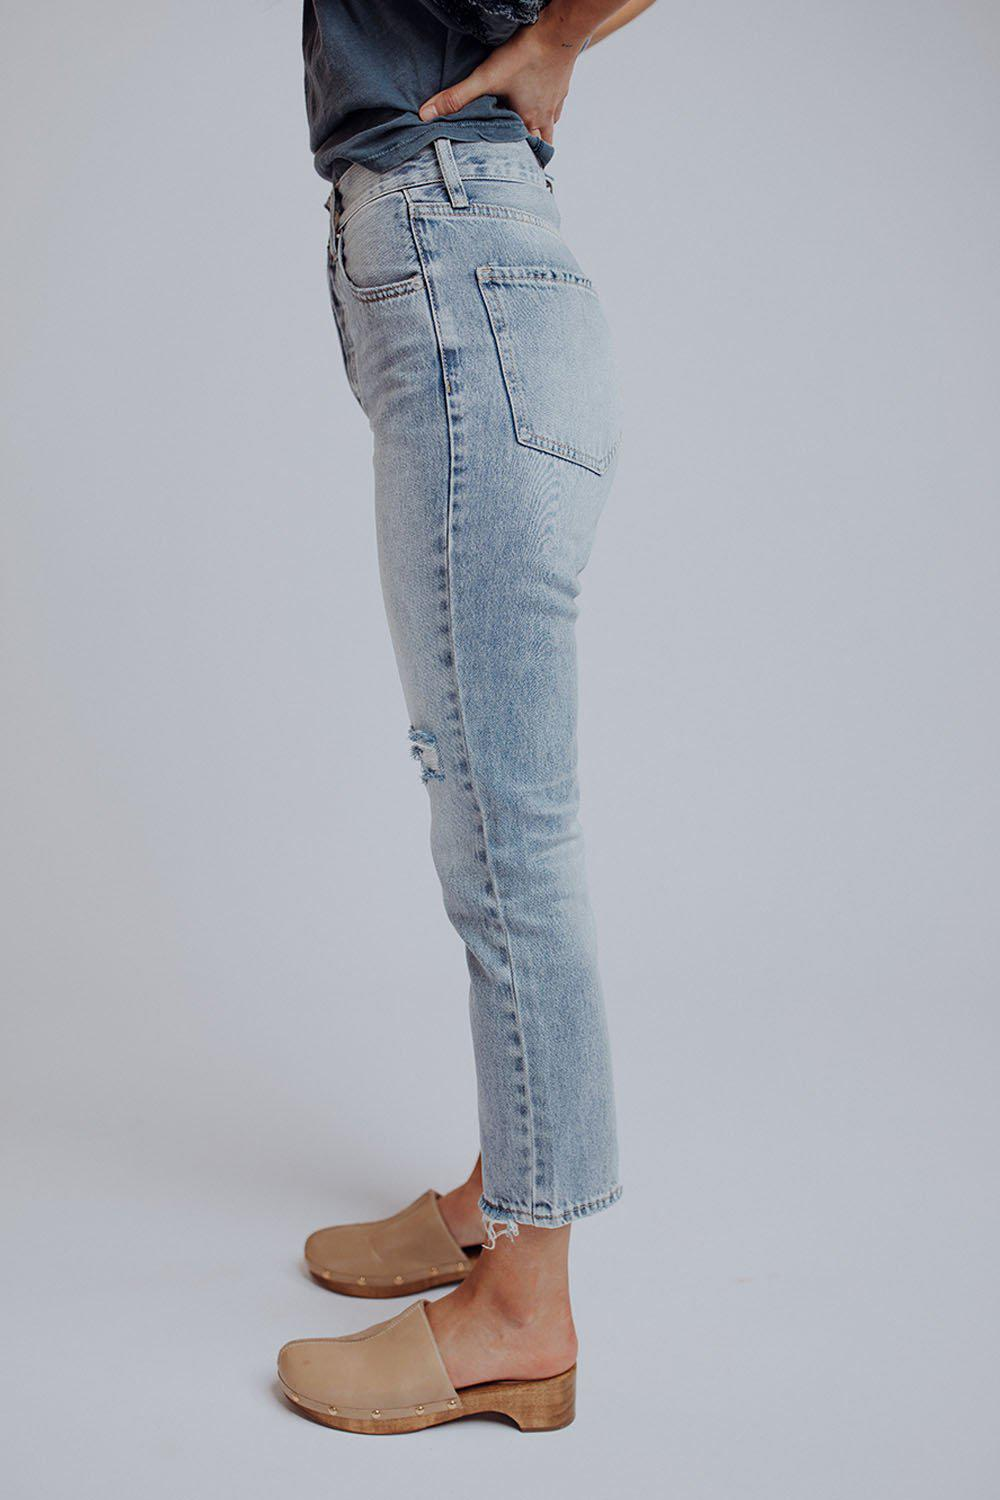 best_seller, Not Your Mom's High-Waisted Jeans in Light Denim, Bottom, women's clothing, dresses, skirts, coats, jackets, shoes, boots, tops, tee shirts, jeans, free people, levi's, rollas, jumpsuits, bottoms, tops, sweaters, pullovers, pants, shorts, sweats,.